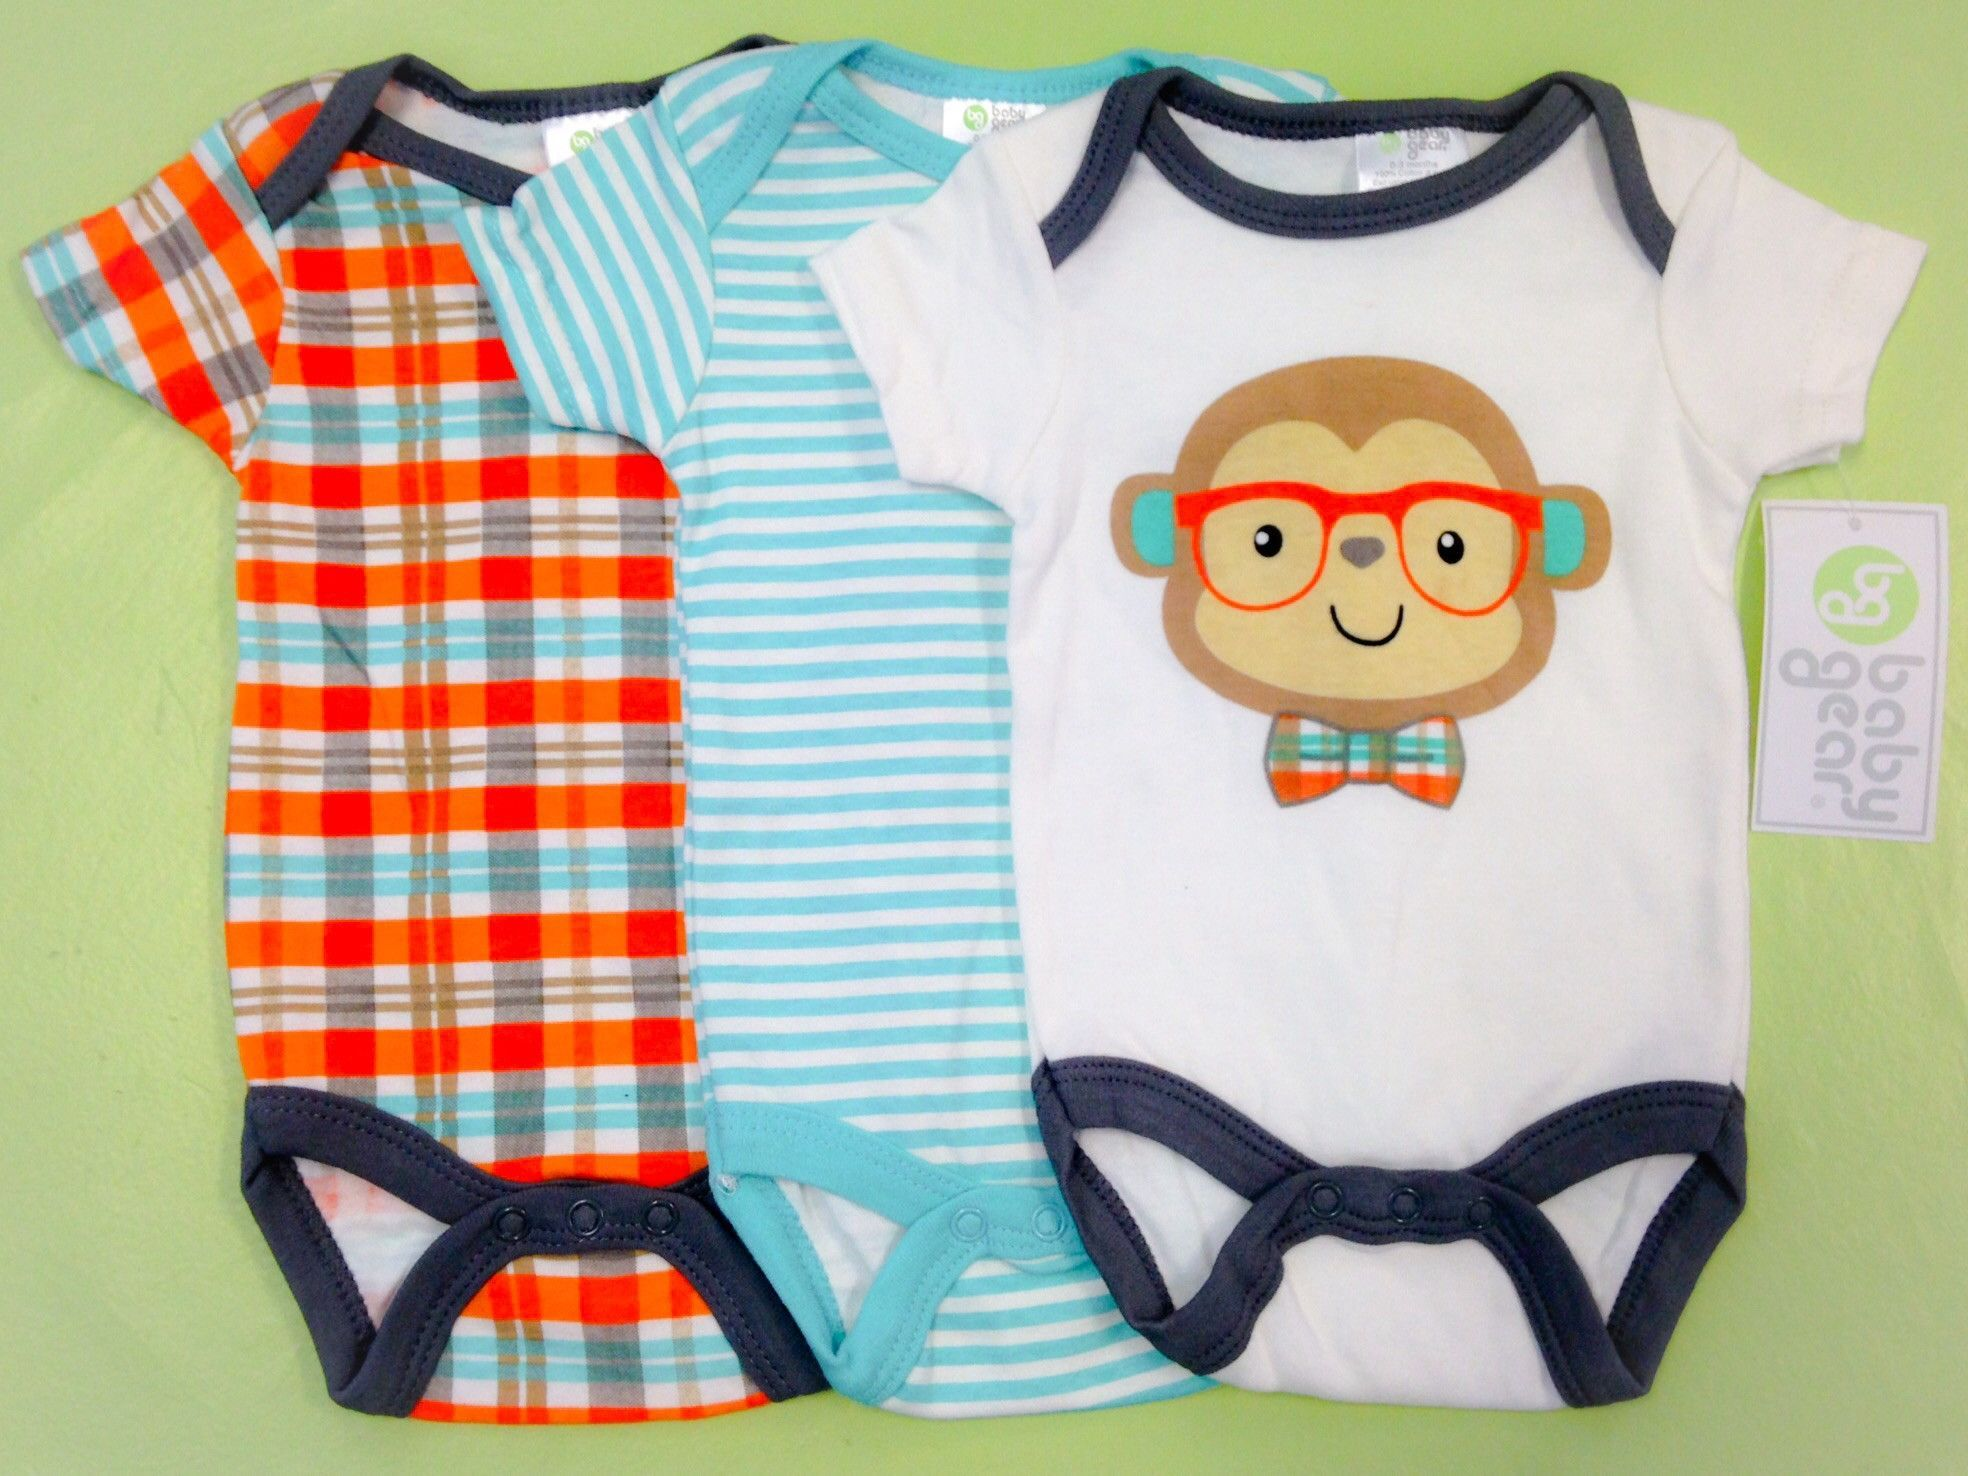 b7a54bf1ce41a Cool Baby Racoon 3 piece onsies set - 100% cotton | Baby Cooper ...